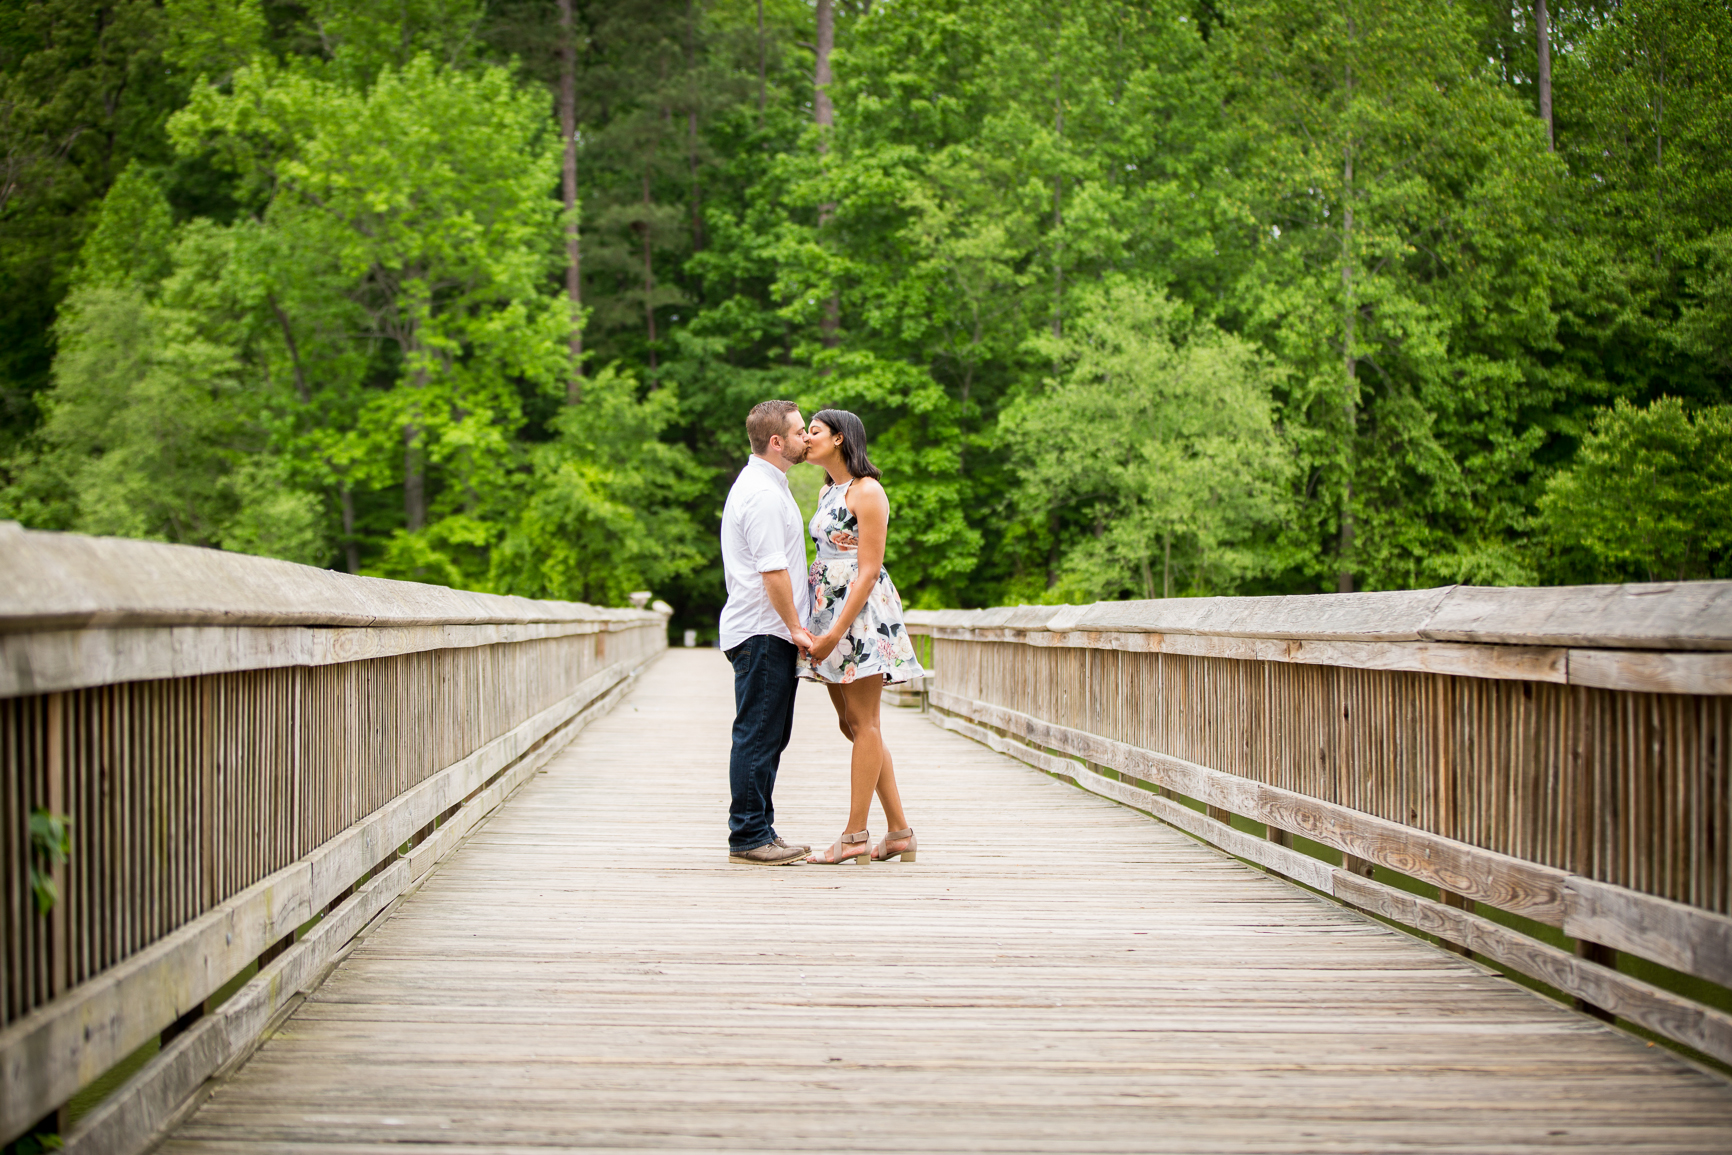 Yates Mill engagement photography session - Raleigh Parks Photography -  H+T